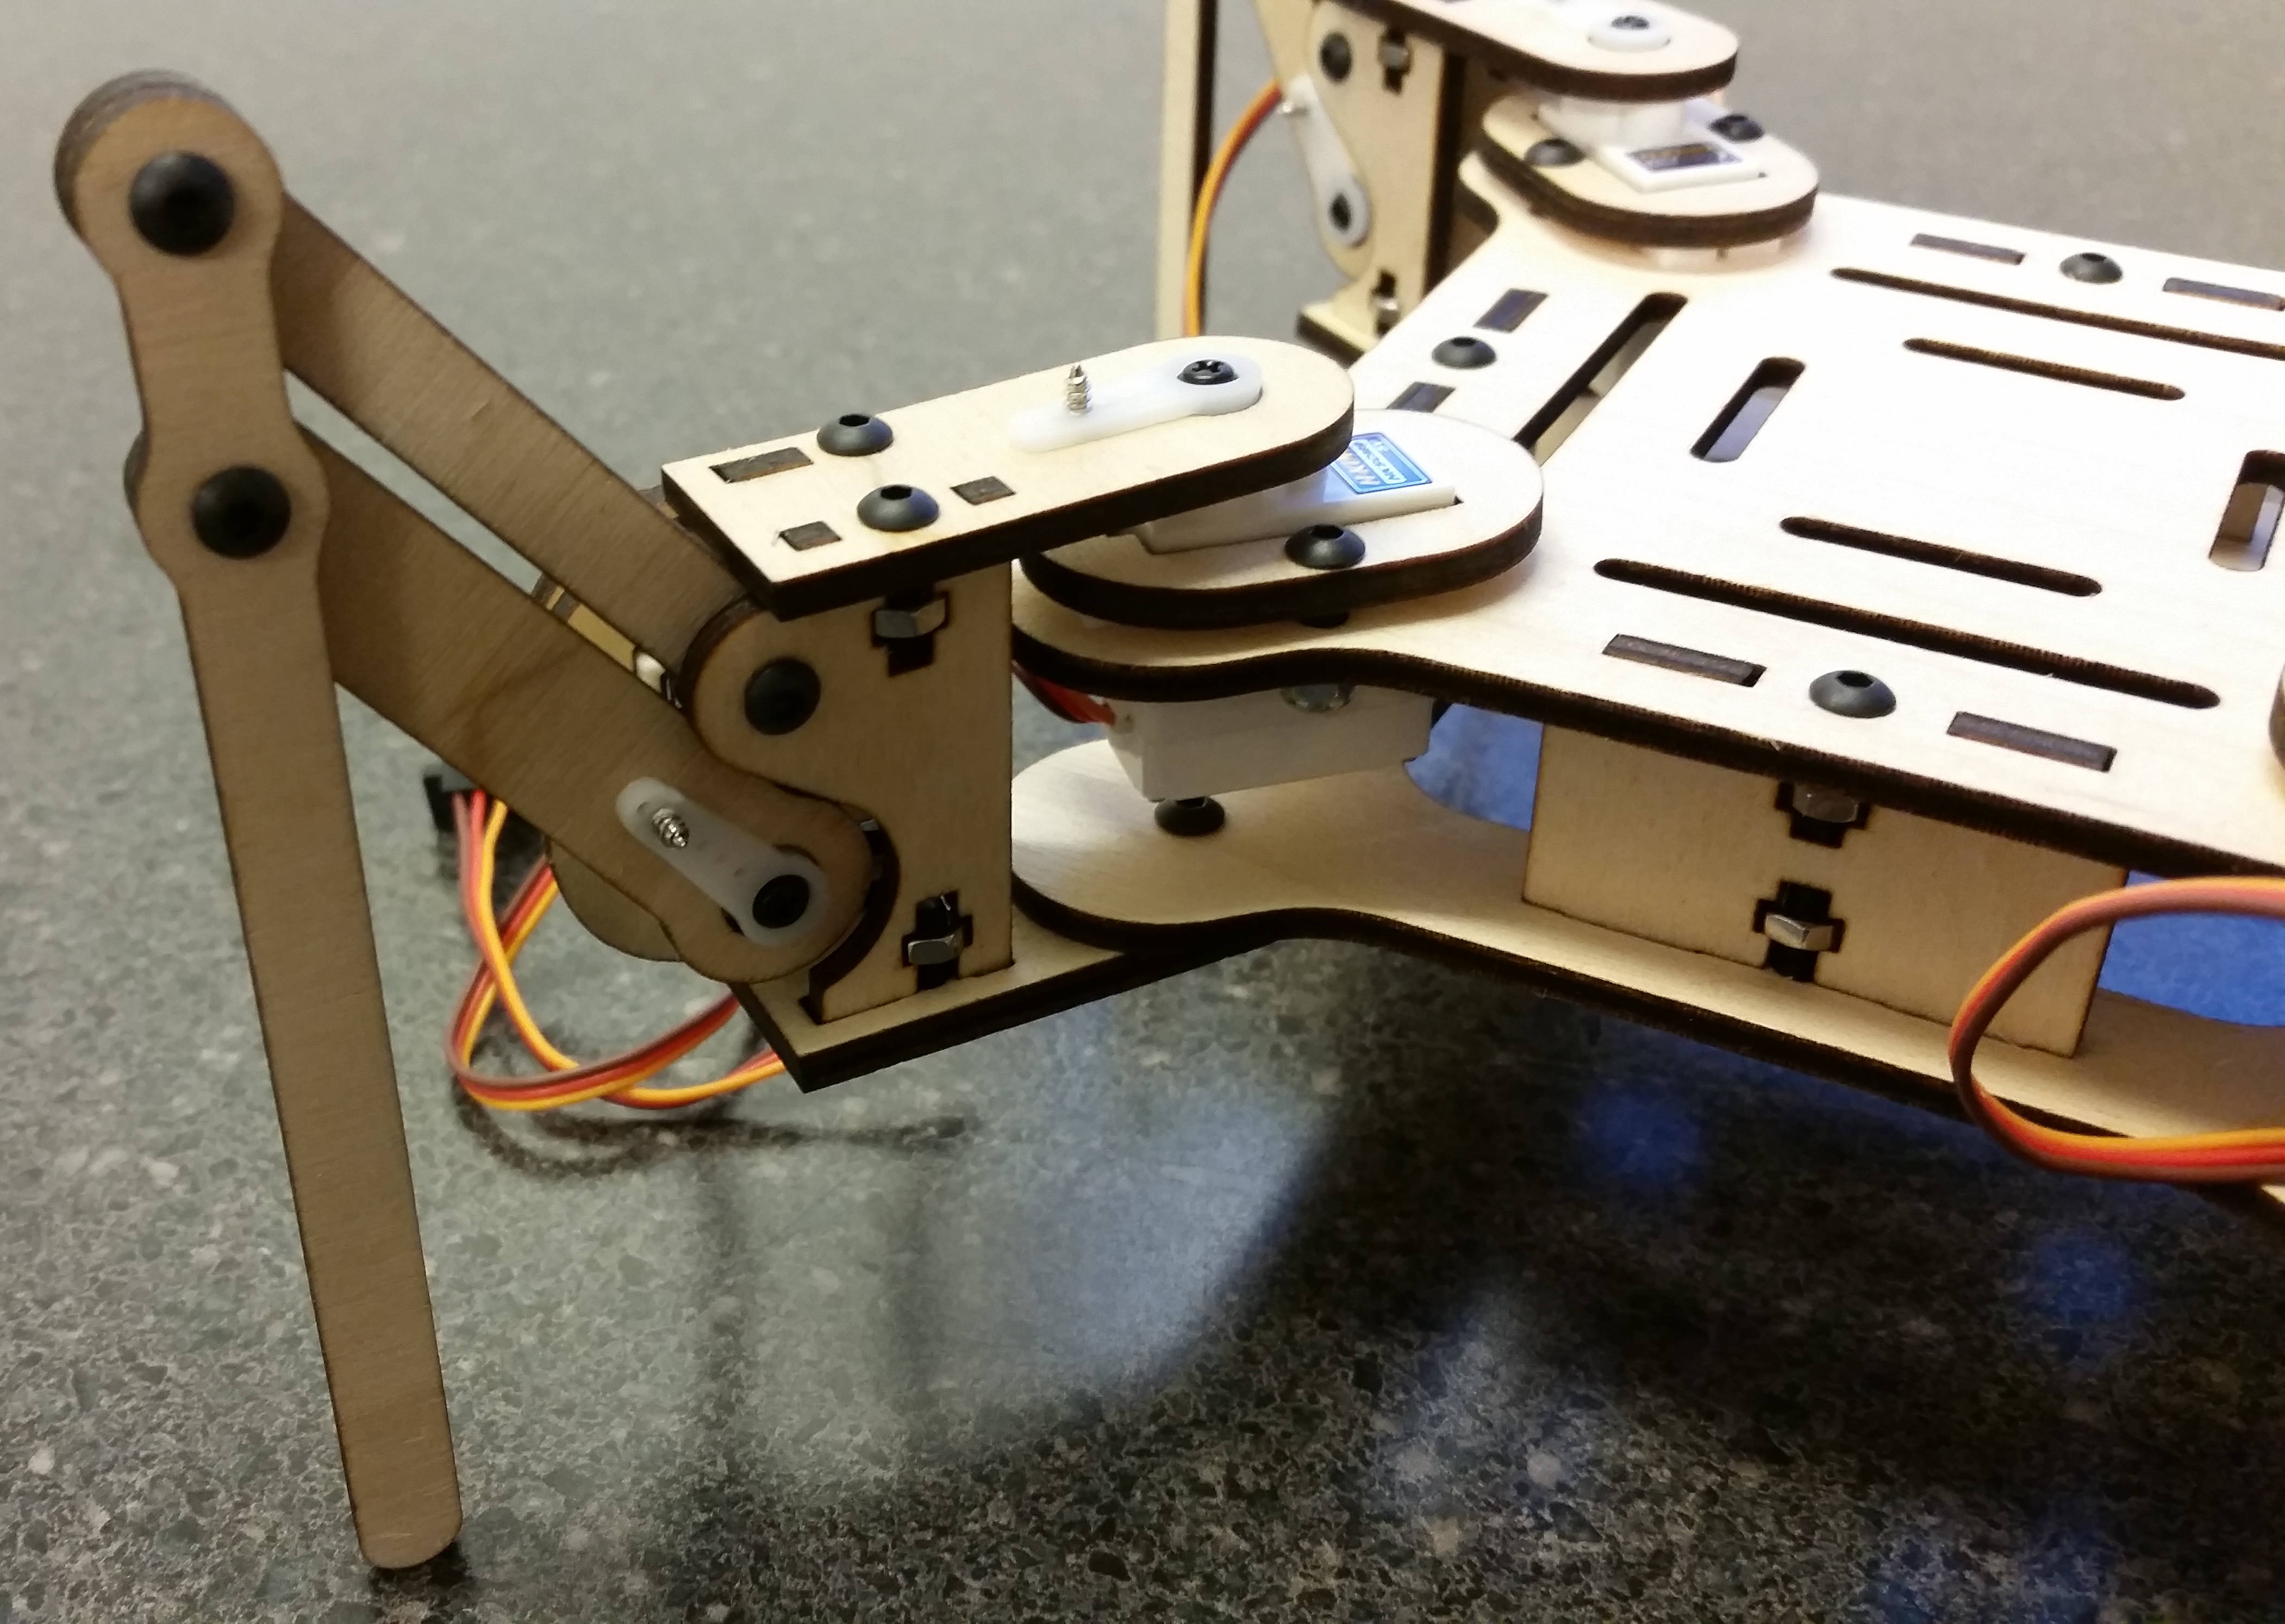 mePed_.01a_-_3.jpg Download free STL file mePed Quadruped Robot • 3D printing template, MinorSymphony